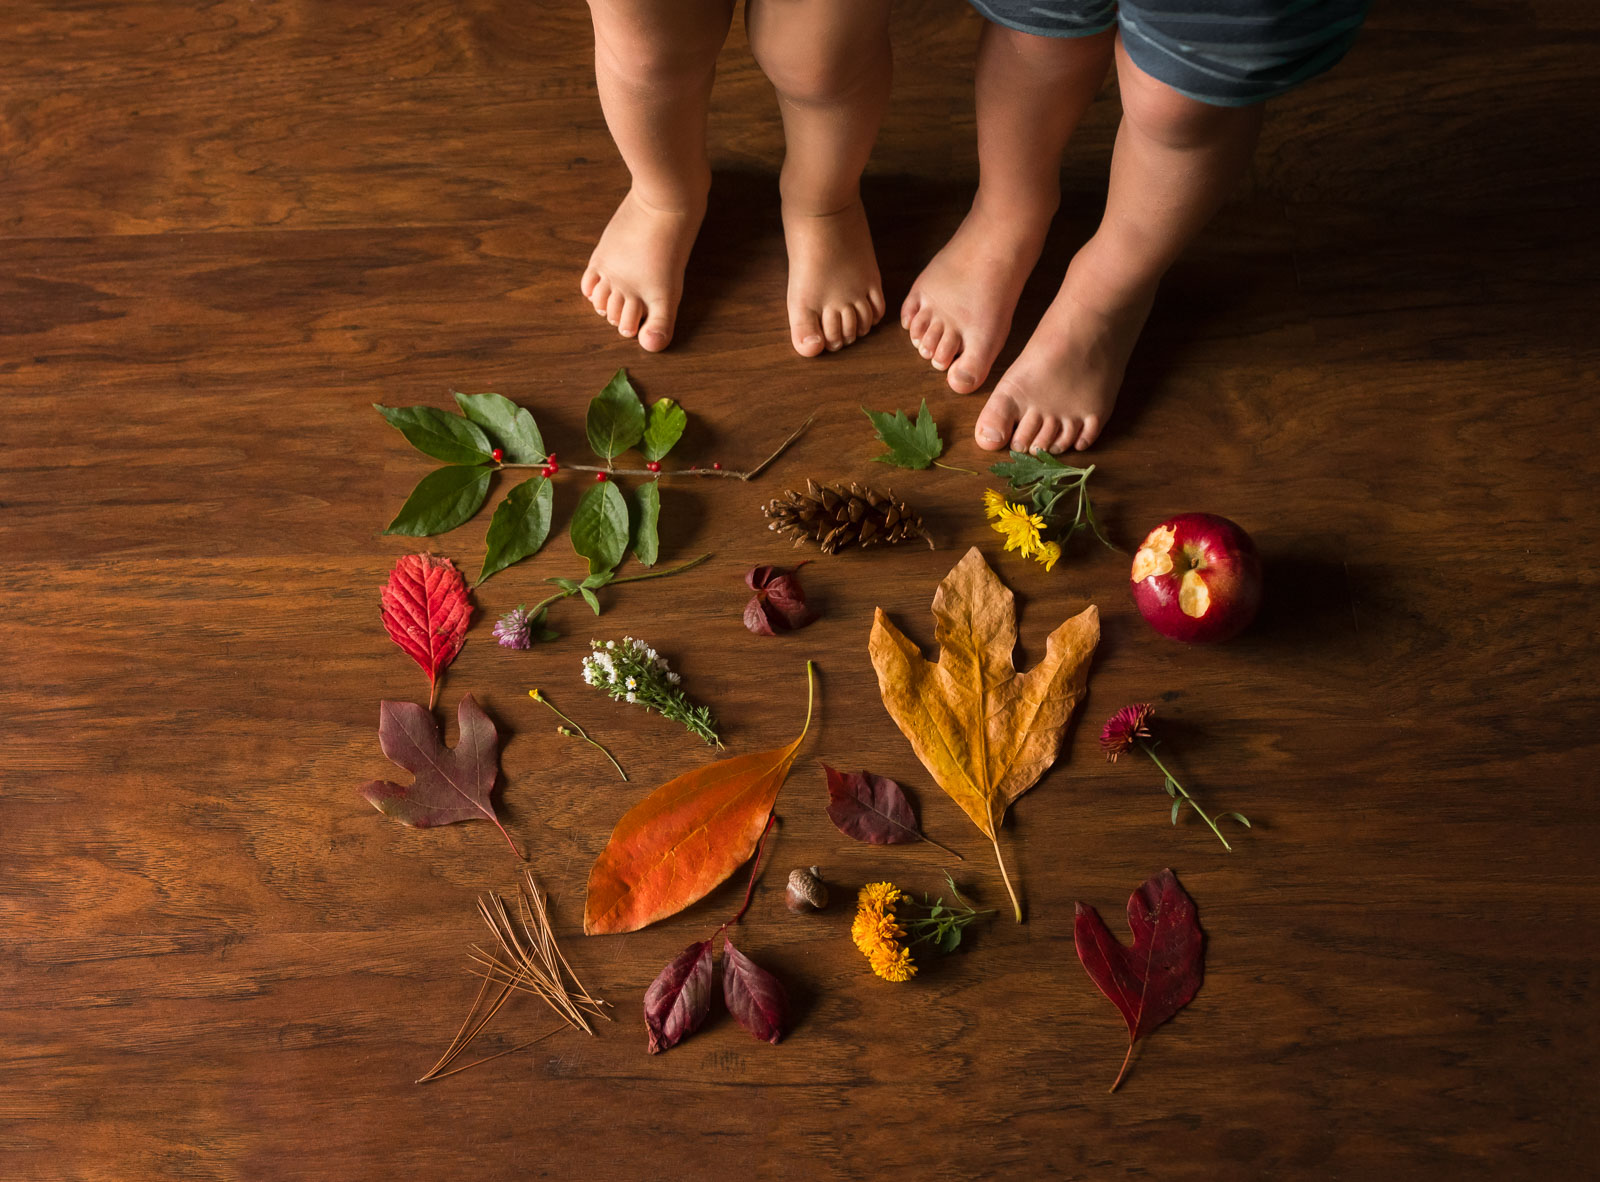 picture of kids feet and their nature treasures by Danielle Awwad